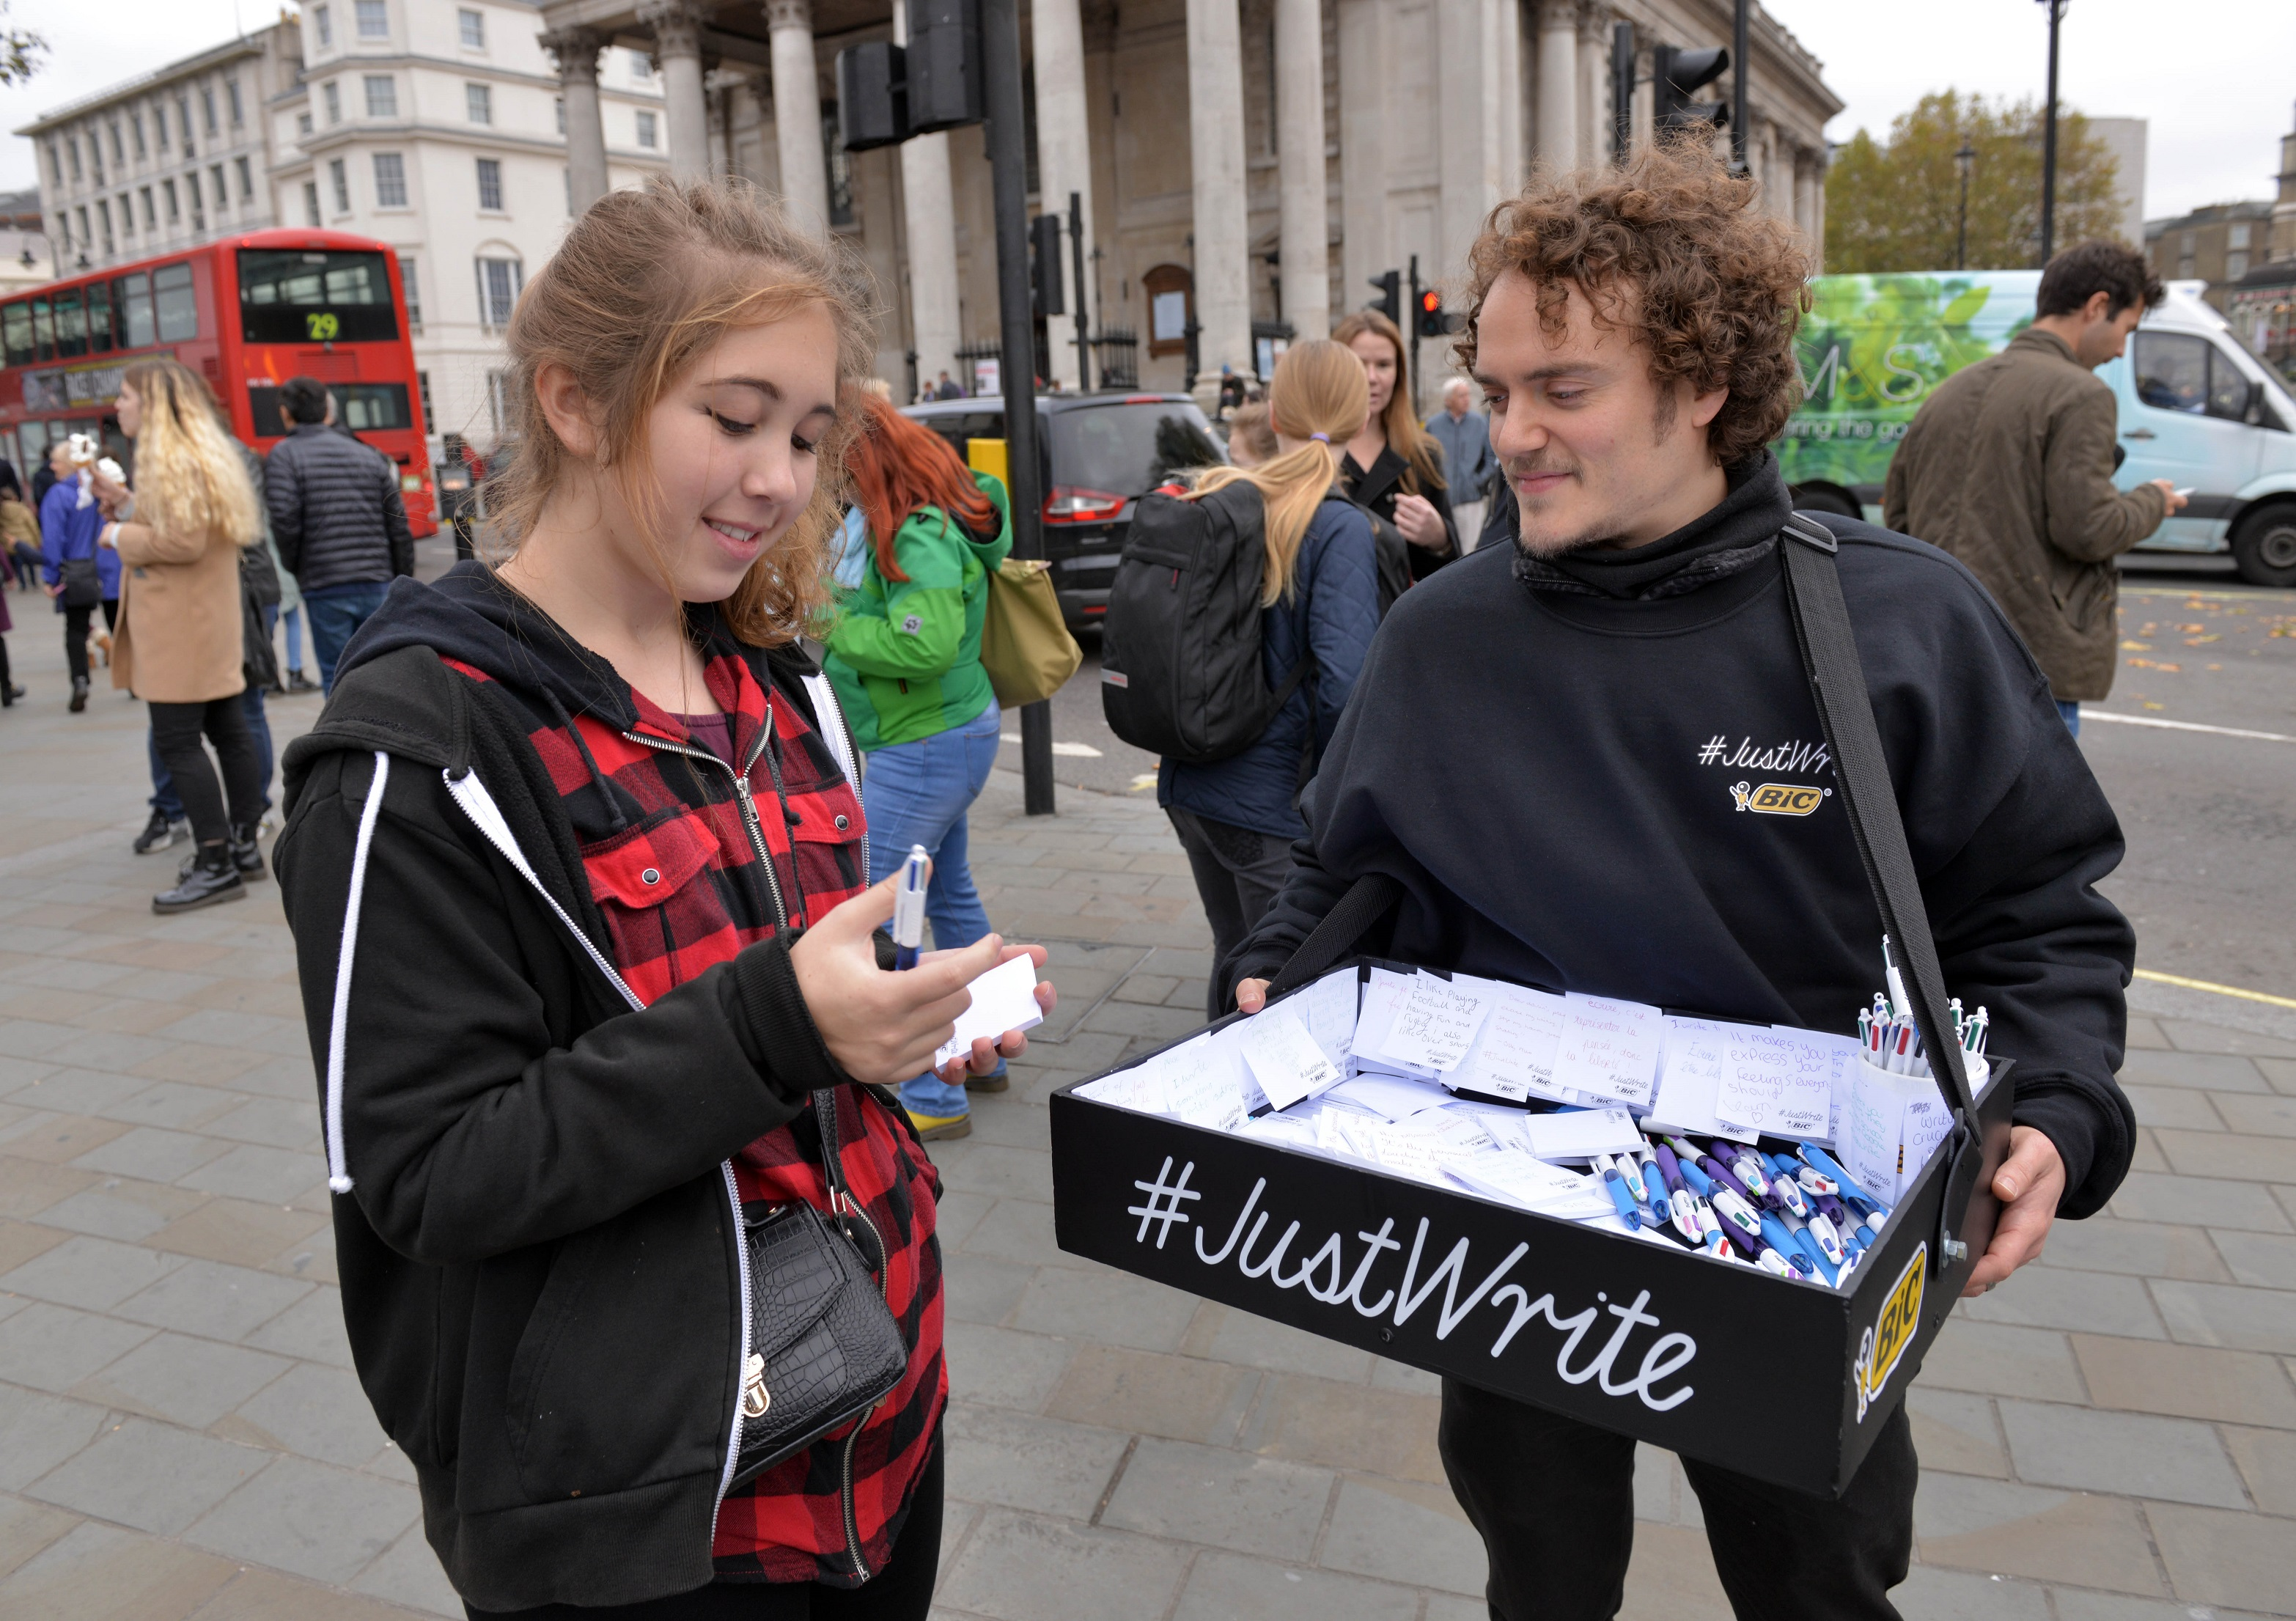 A promotional team member with an usherette style writing tray, encourages a member of the public to write a hand-written note.